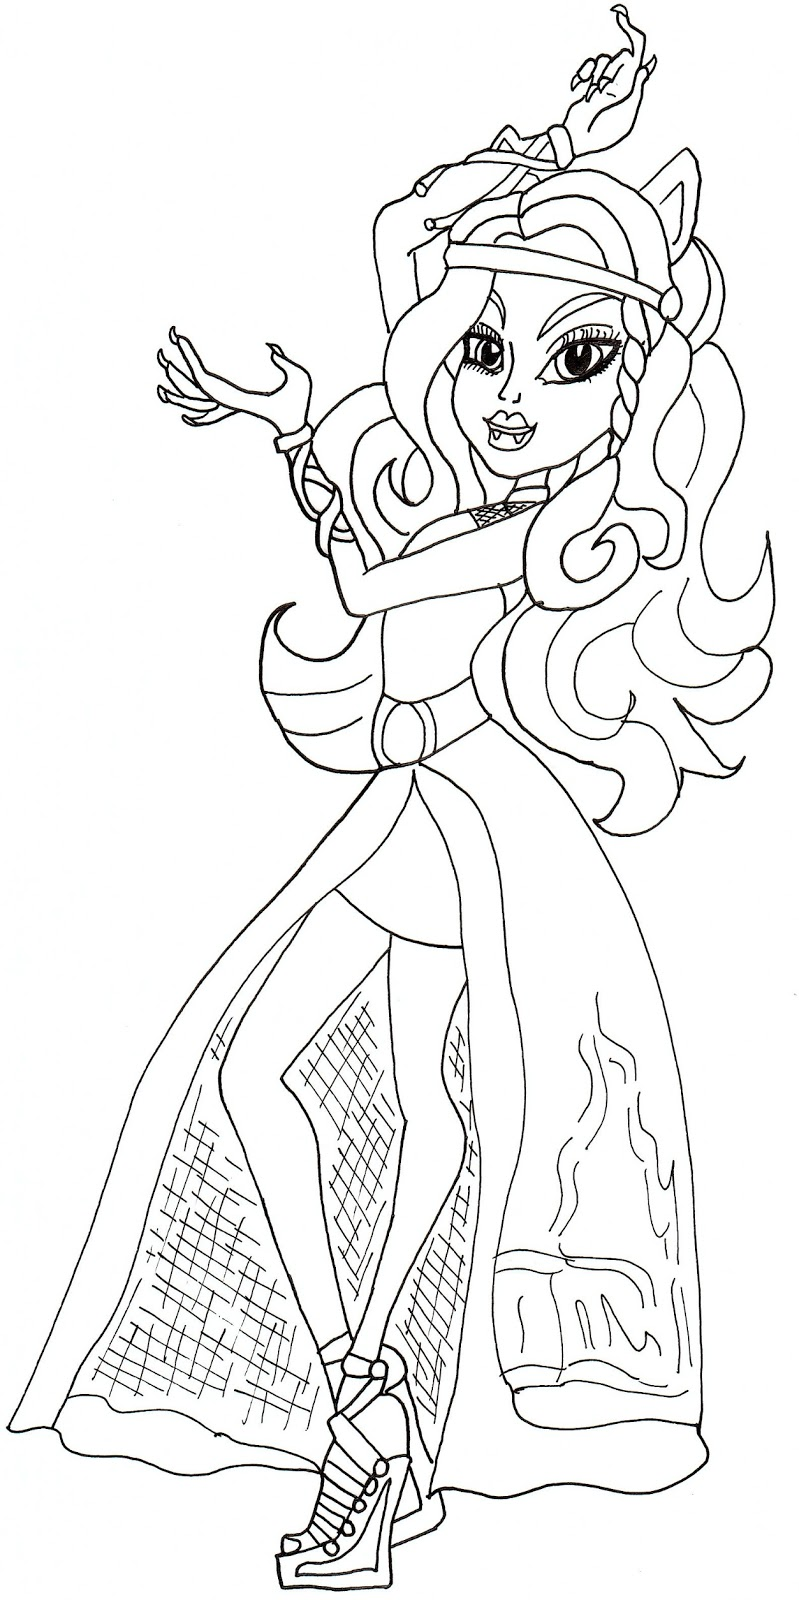 Free Printable Monster High Coloring Pages June 2013 High Coloring Pages Free